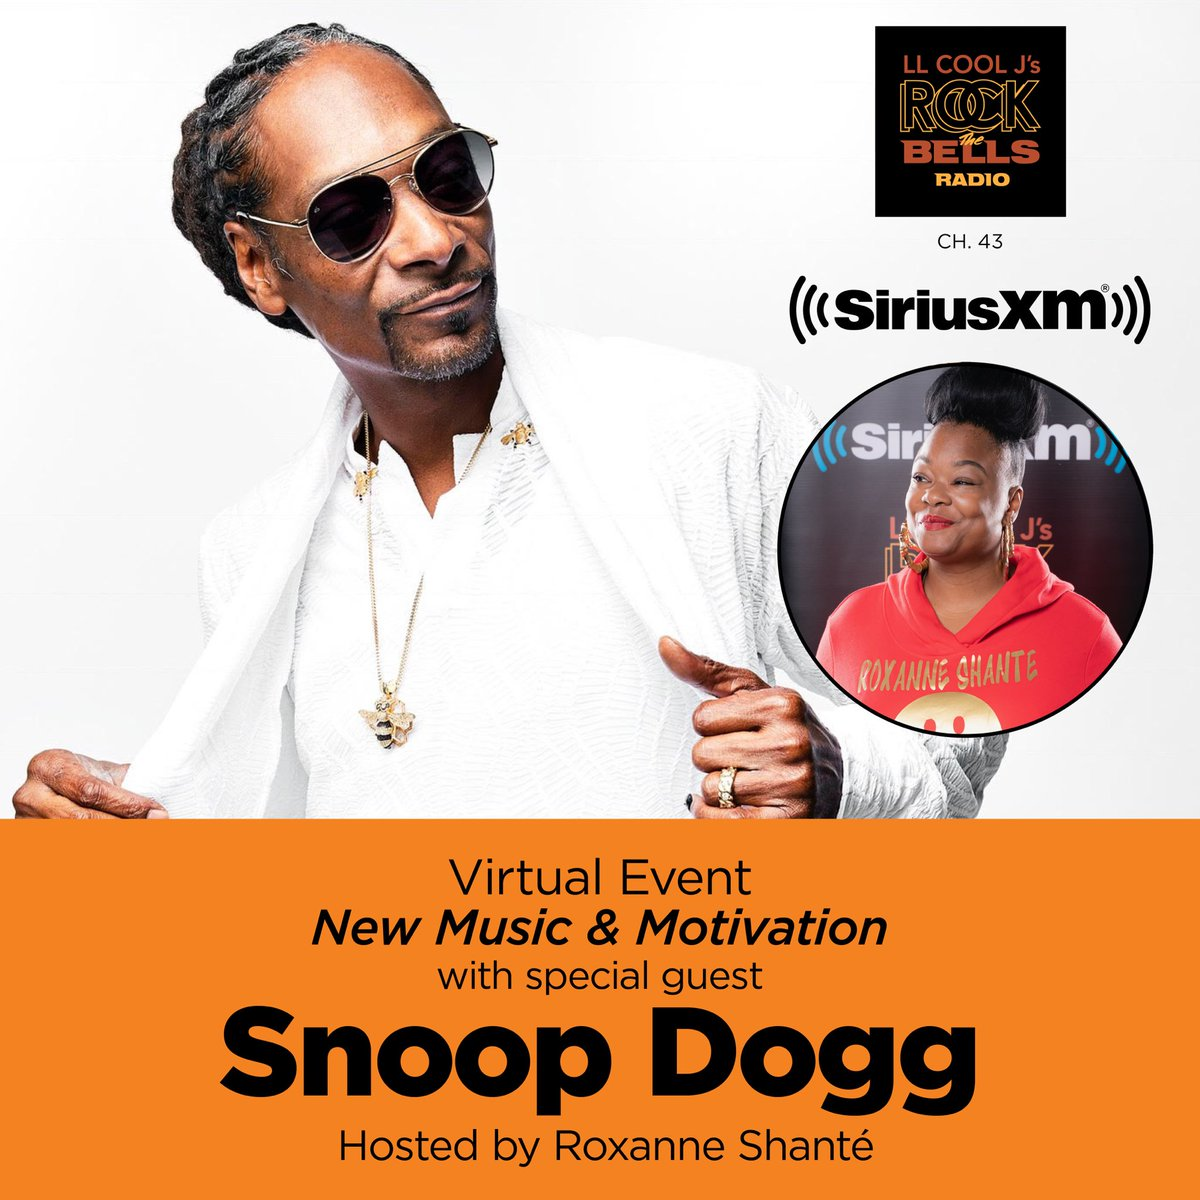 """Want to attend a VIRTUAL """"New Music & Motivation"""" with special guest @SnoopDogg hosted by @ImroxanneShante on 10/26? EMAIL rsvp@siriusxm.com, include """"Snoop Dogg"""" in the subject line, your name/email/phone by 5pm ET on 10/25. 50 eligible responders could attend."""